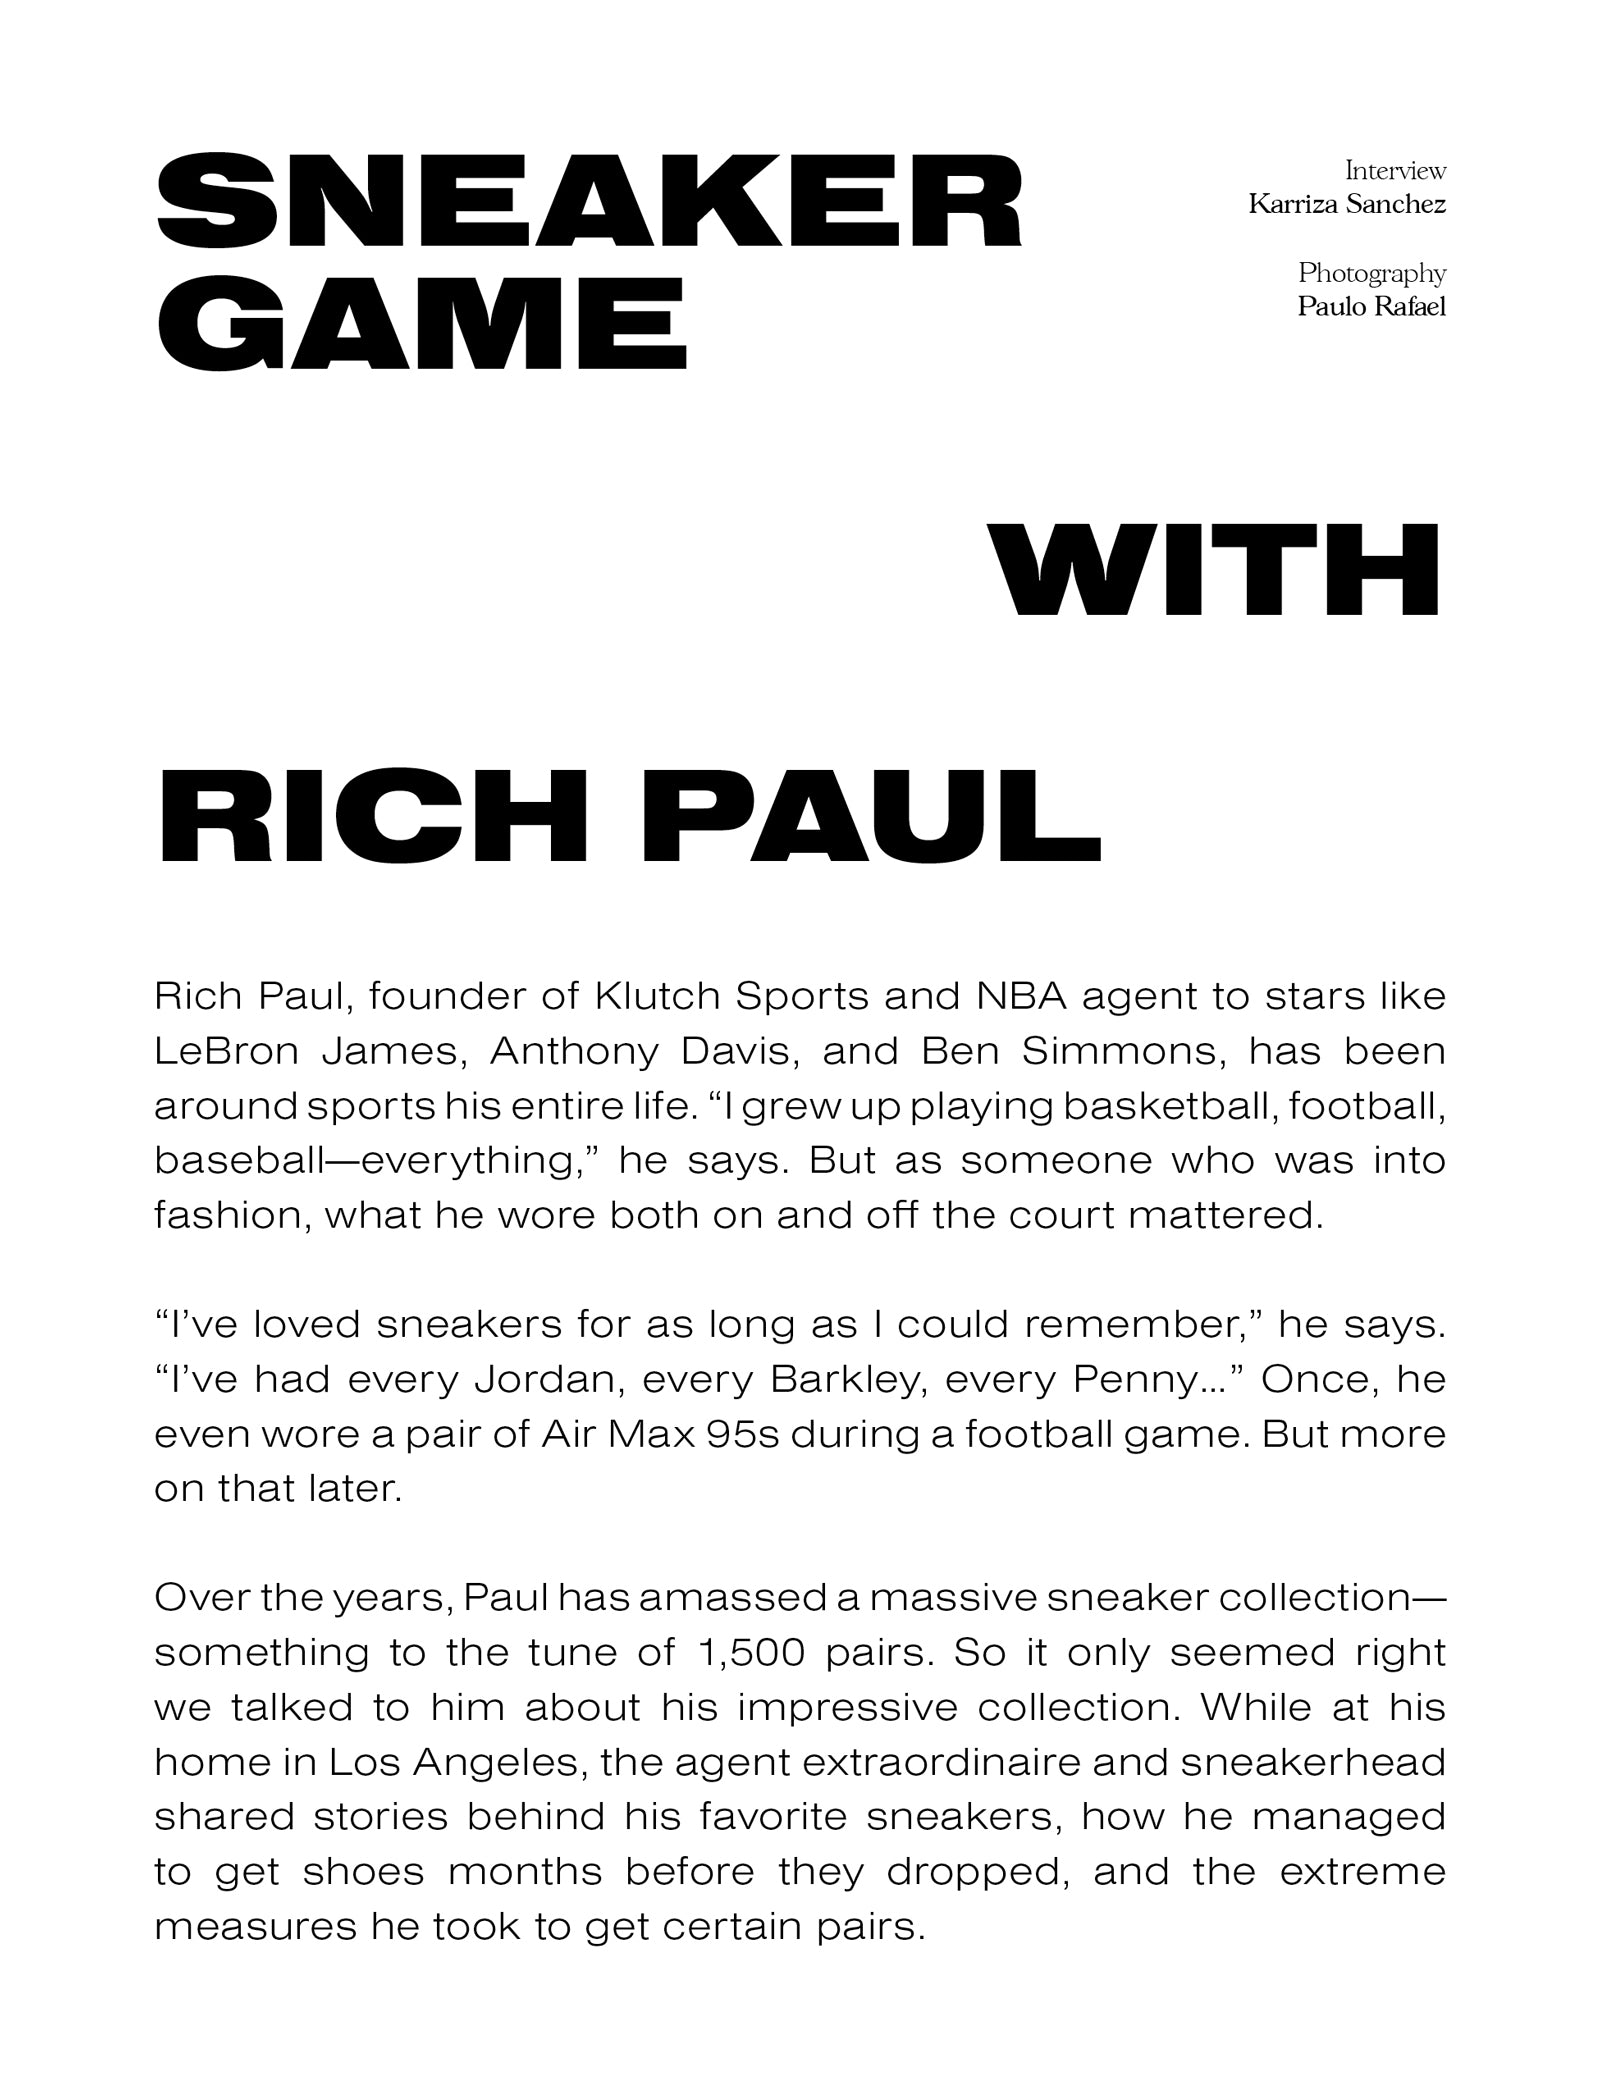 """Sneaker Game with Rich Paul. Interview - Karriza Sanchez. Photography - Paulo Rafael. Rich Paul, founder of Klutch Sports and NBA agent to stars like LeBron James, Anthony Davis, and Ben Simmons, has been around sports his entire life. """"I grew up playing basketball, football, baseball—everything,"""" he says. But as someone who was into fashion, what he wore both on and off the court mattered. """"I've loved sneakers for as long as I could remember,"""" he says. """"I've had every Jordan, every Barkley, every Penny…"""" Once, he even wore a pair of Air Max 95s during a football game. But more on that later. Over the years, Paul has amassed a massive sneaker collection— something to the tune of 1,500 pairs. So it only seemed right we talked to him about his impressive collection. While at his home in Los Angeles, the agent extraordinaire and sneakerhead shared stories behind his favorite sneakers, how he managed to get shoes months before they dropped, and the extreme measures he took to get certain pairs."""